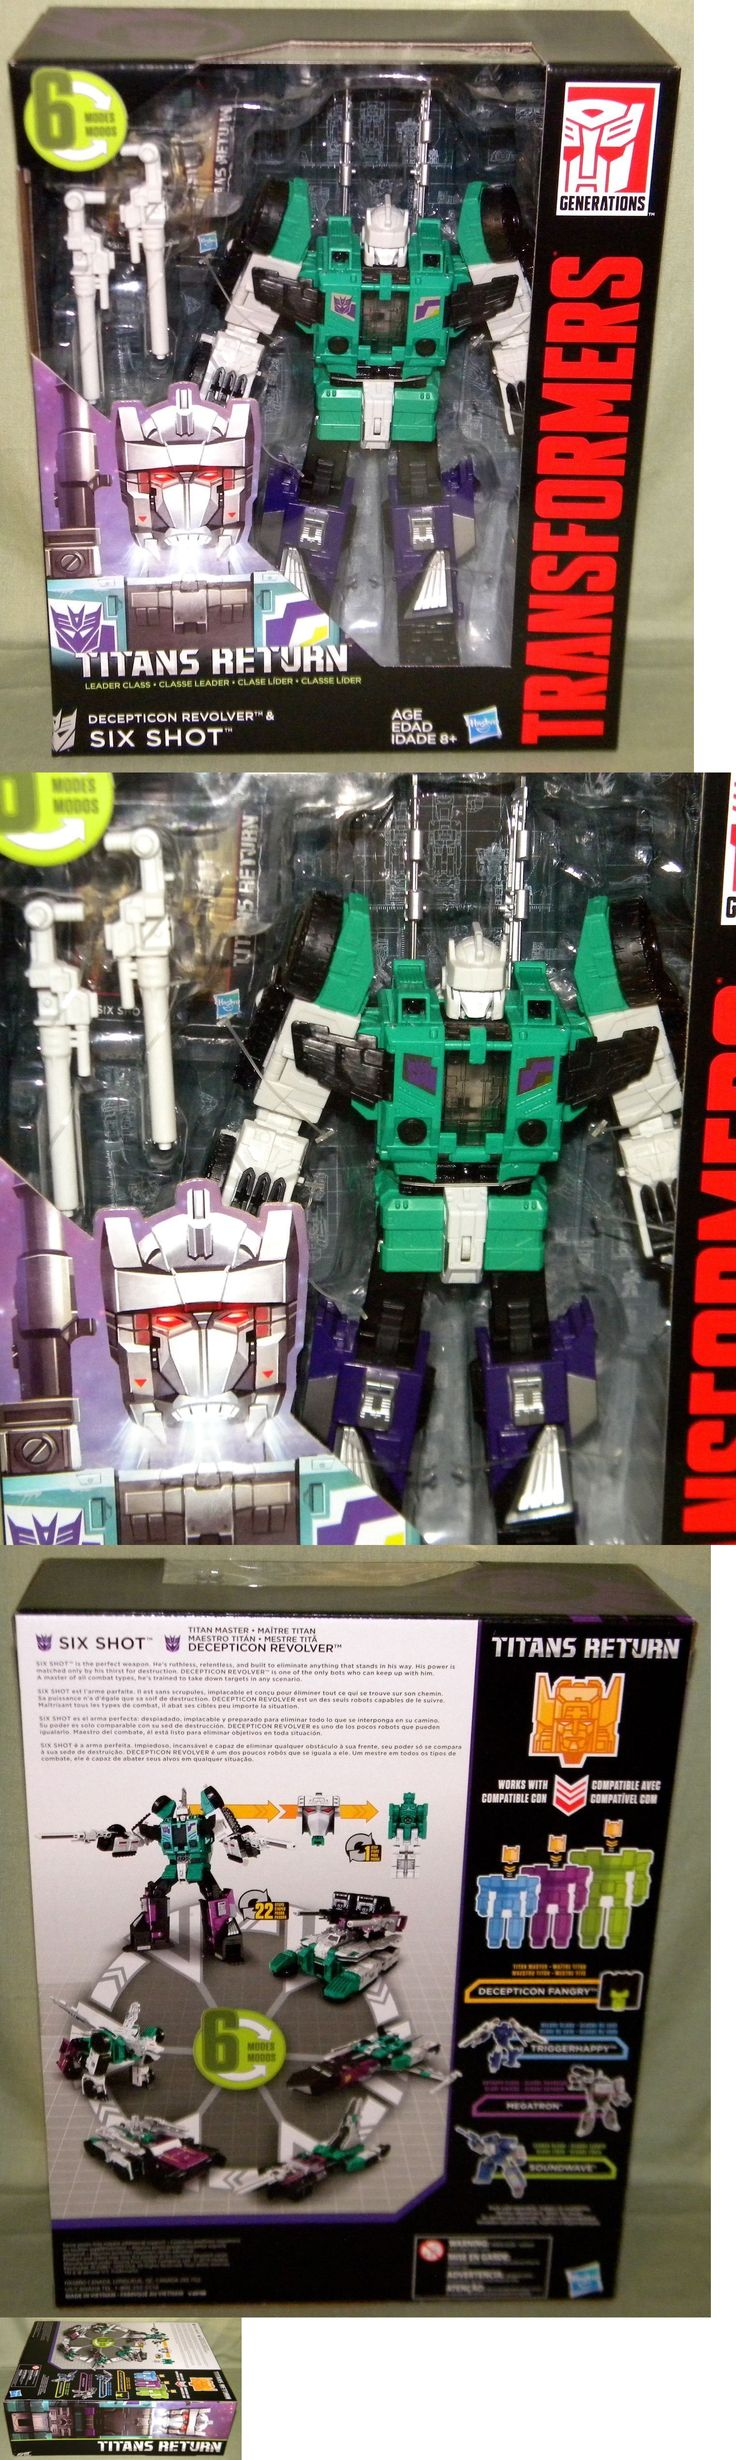 Transformers and Robots 83732: Decepticon Revolver And Six Shot Transformers Titans Return Leader Class 2017 -> BUY IT NOW ONLY: $47.95 on eBay!